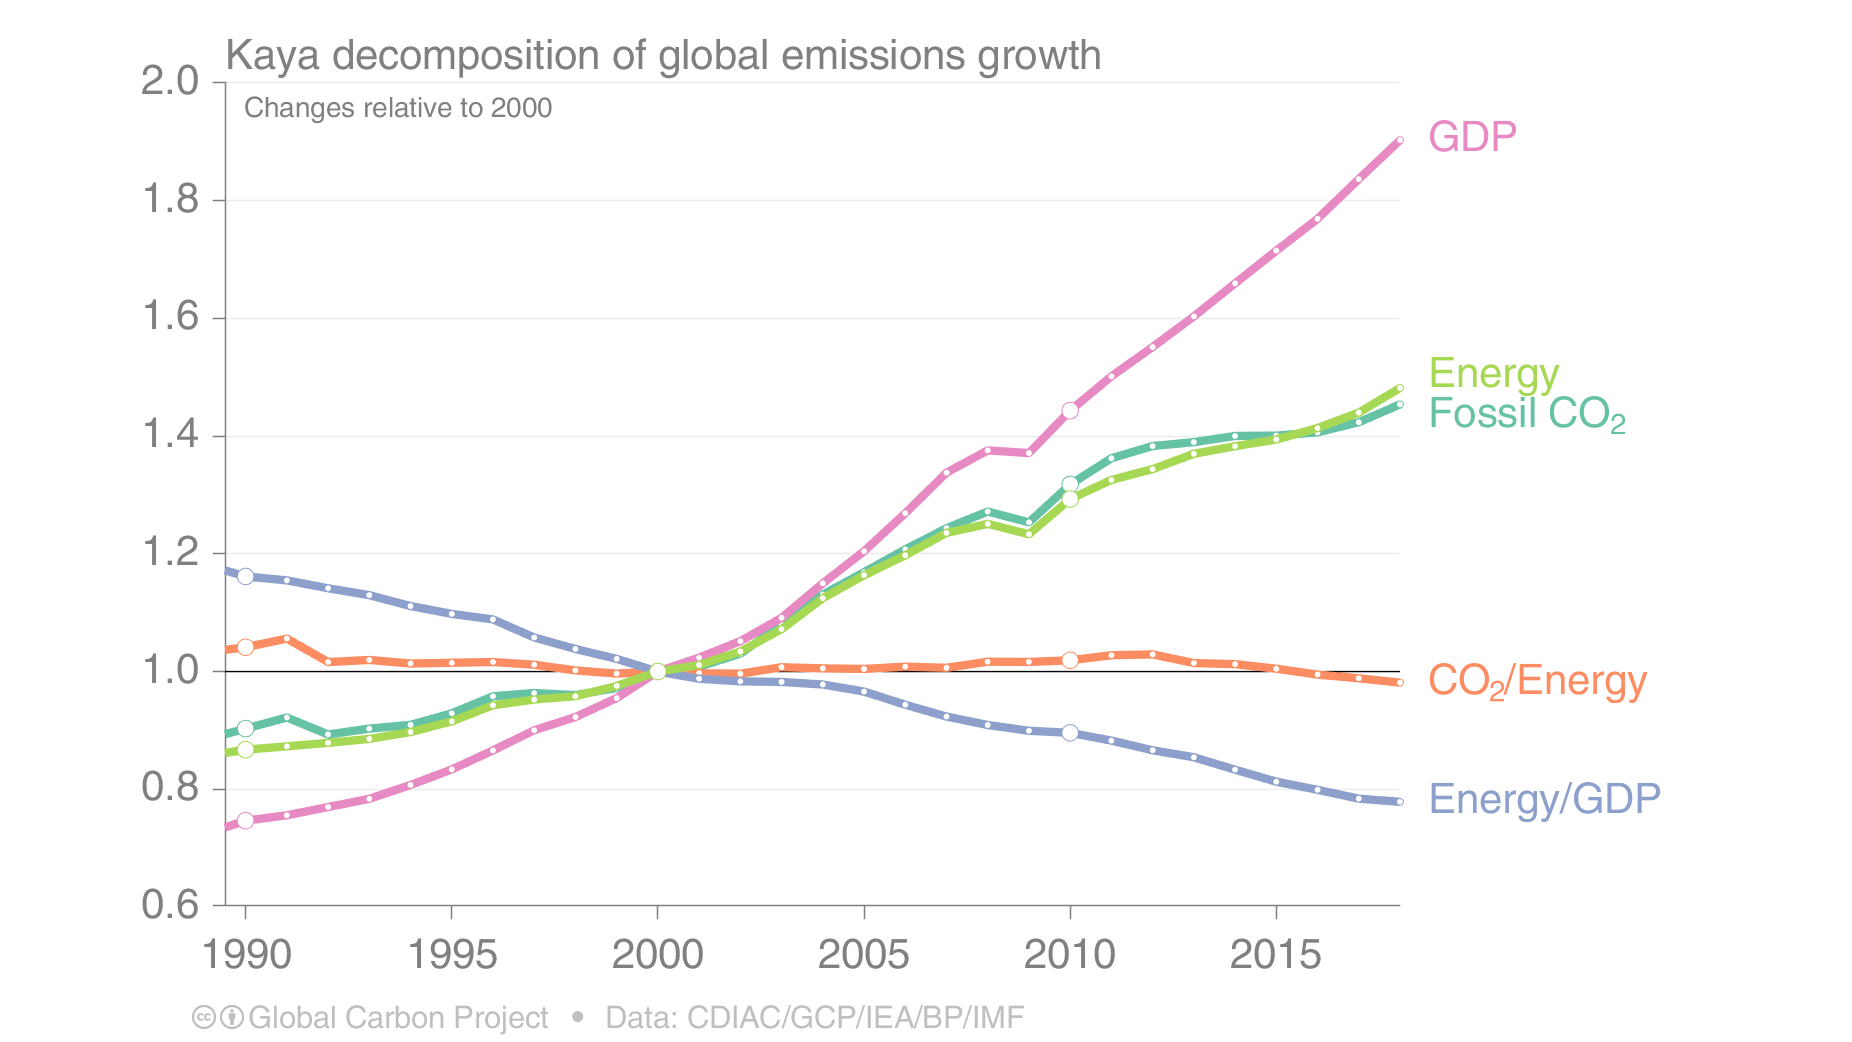 One way to break down emissions drivers: economic output (GDP), energy use per unit of GDP, and carbon emissions per unit of energy.